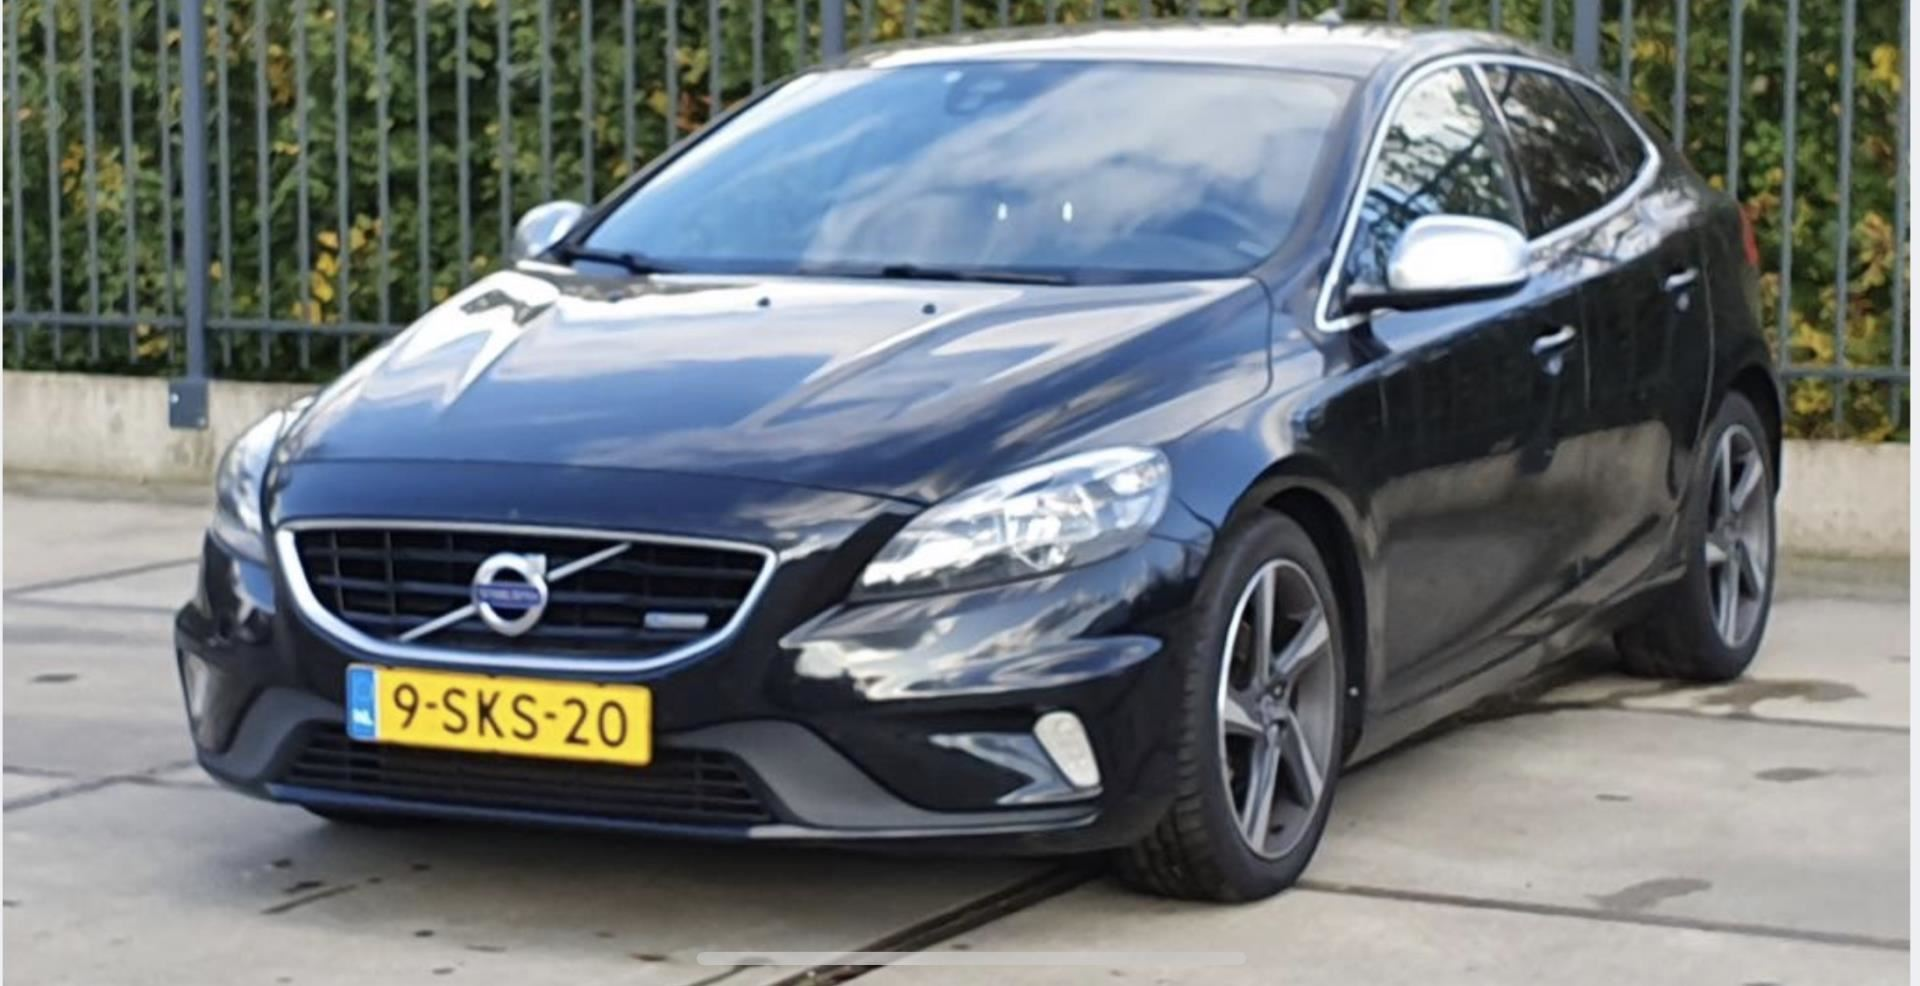 Volvo V40 occasion - Dealer Outlet Cuijk b.v.